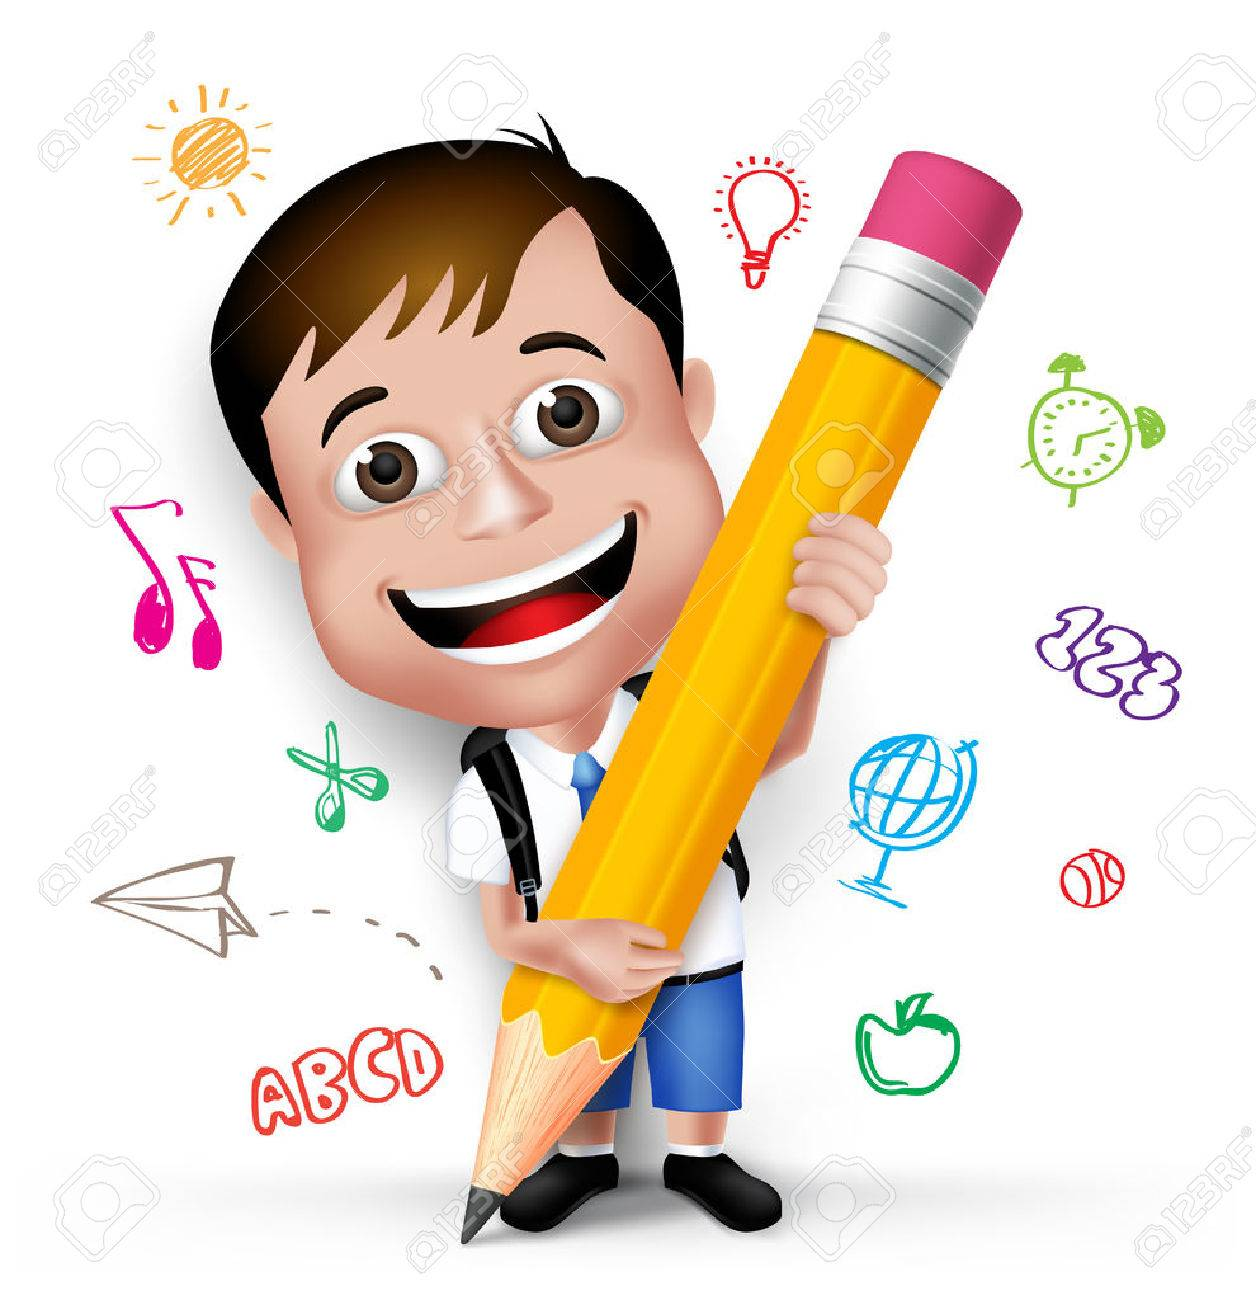 3D Realistic Smart Kid School Boy Wearing Uniform and Backpack Writing Creative Ideas with Big Pencil Isolated in White Background. - 43290683